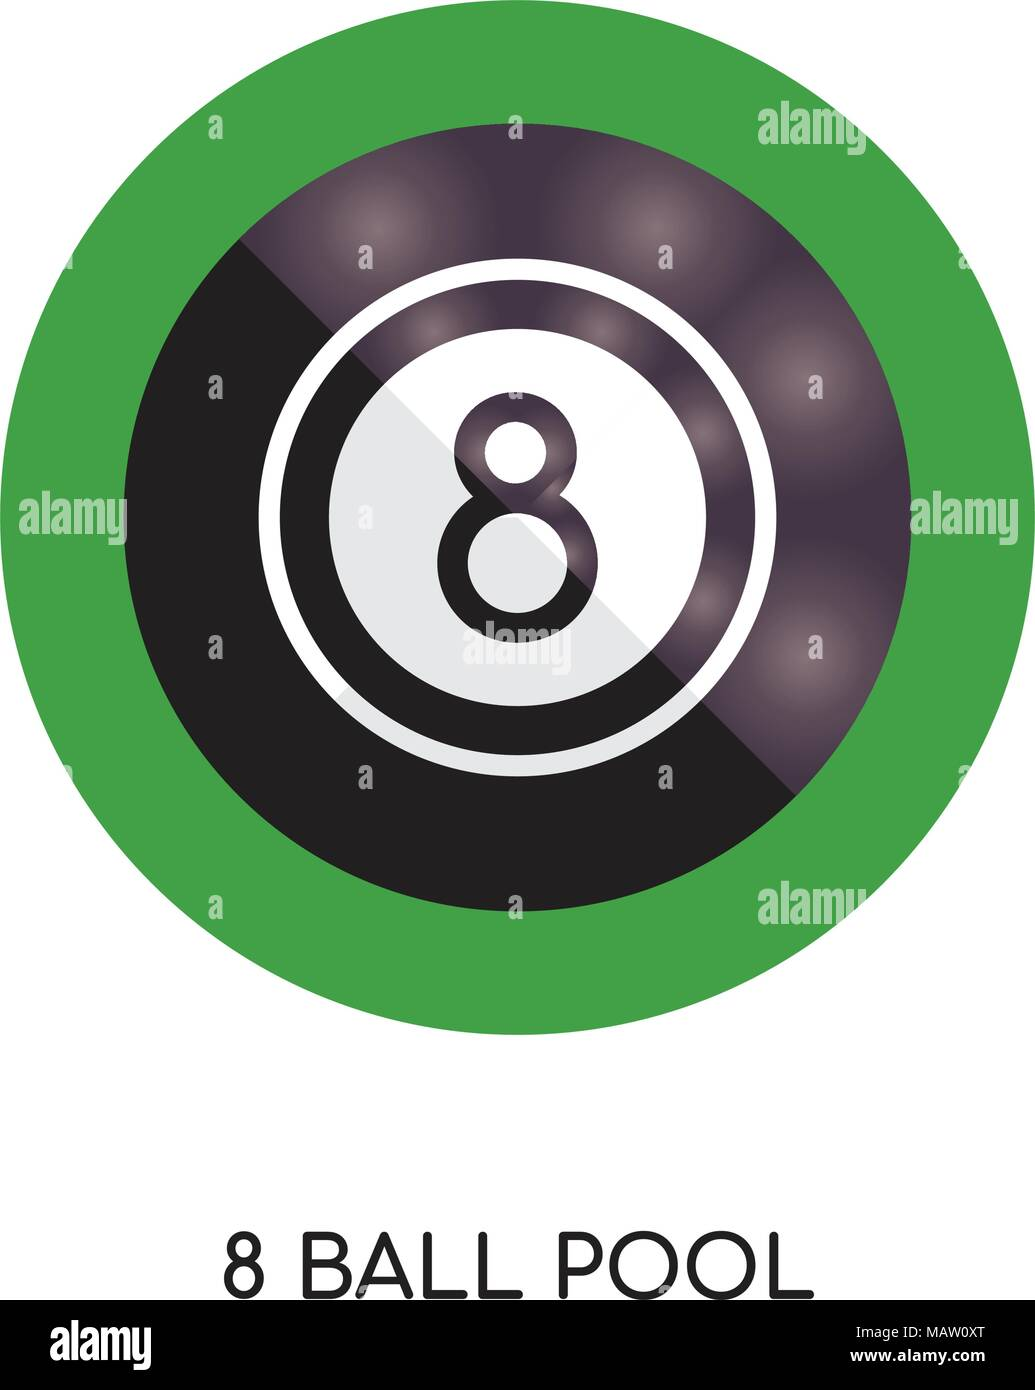 8 Ball Pool Picture : picture, Isolated, White, Background, Mobile, Design, Stock, Vector, Image, Alamy